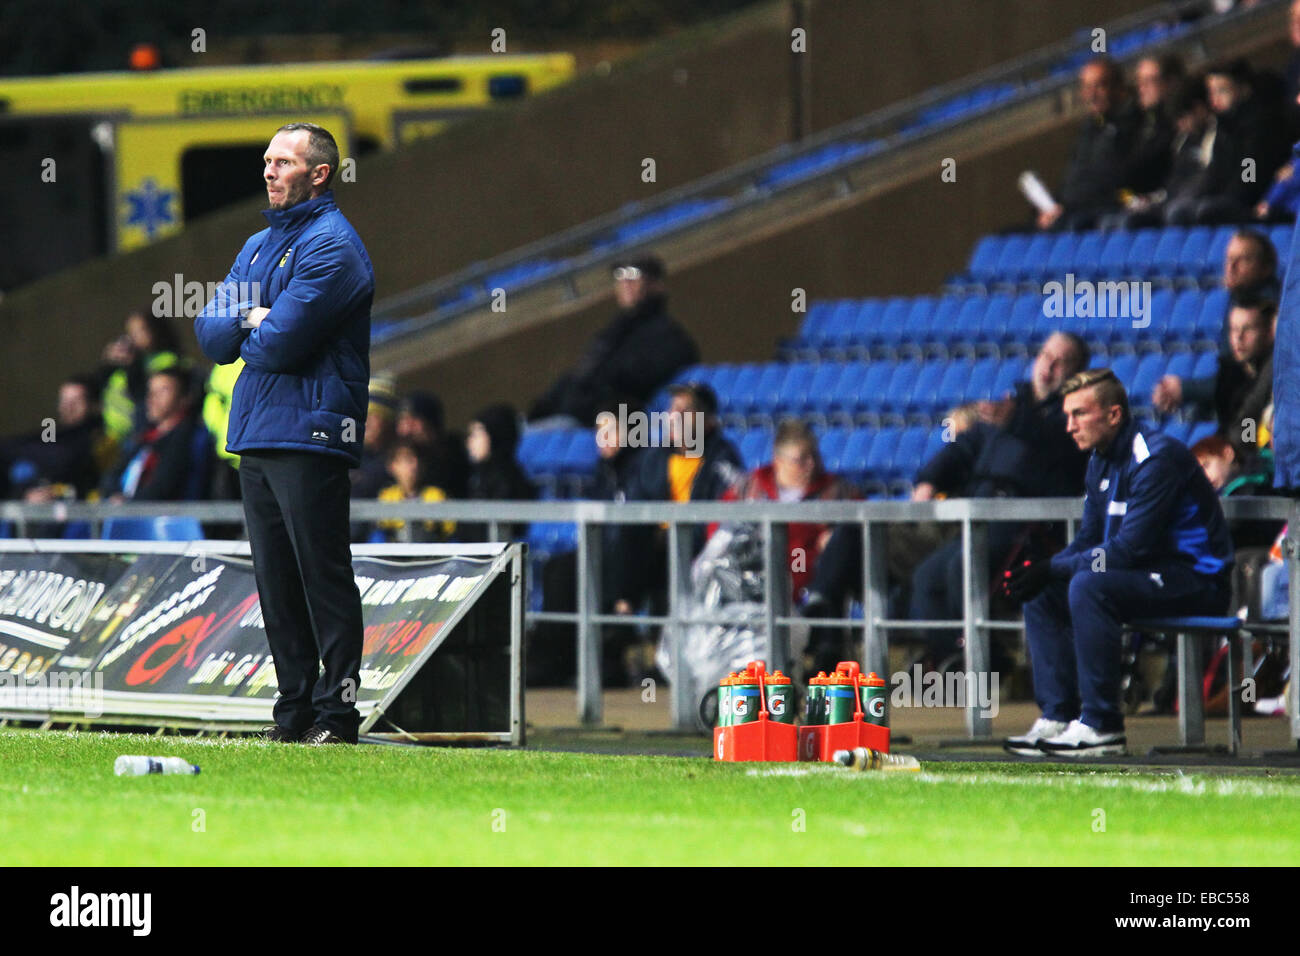 Kassam Stadium, Oxford Job name: sport Notes: FOOTBALL: Oxford United v AFC Wimbledon Pictured here is Oxford manager Stock Photo